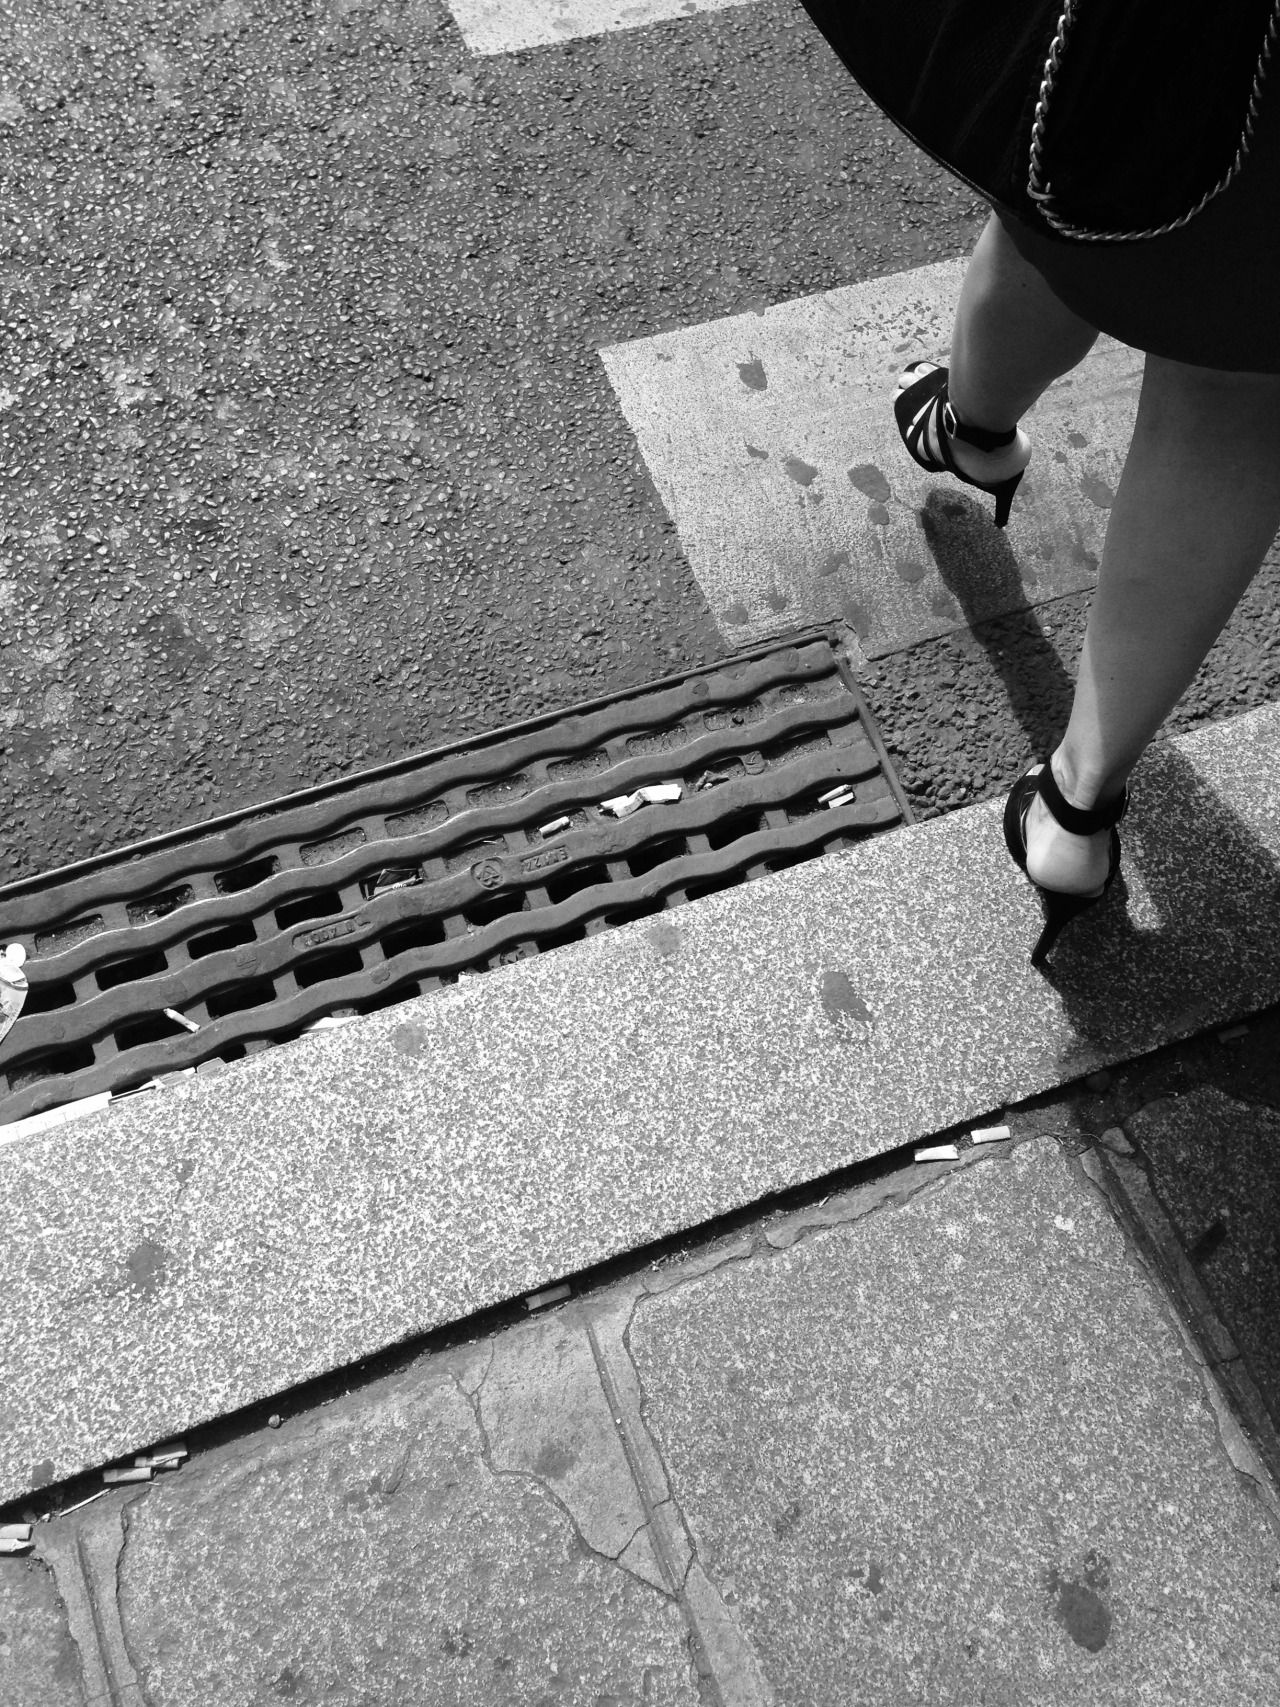 Adrien LC - London black and white street series